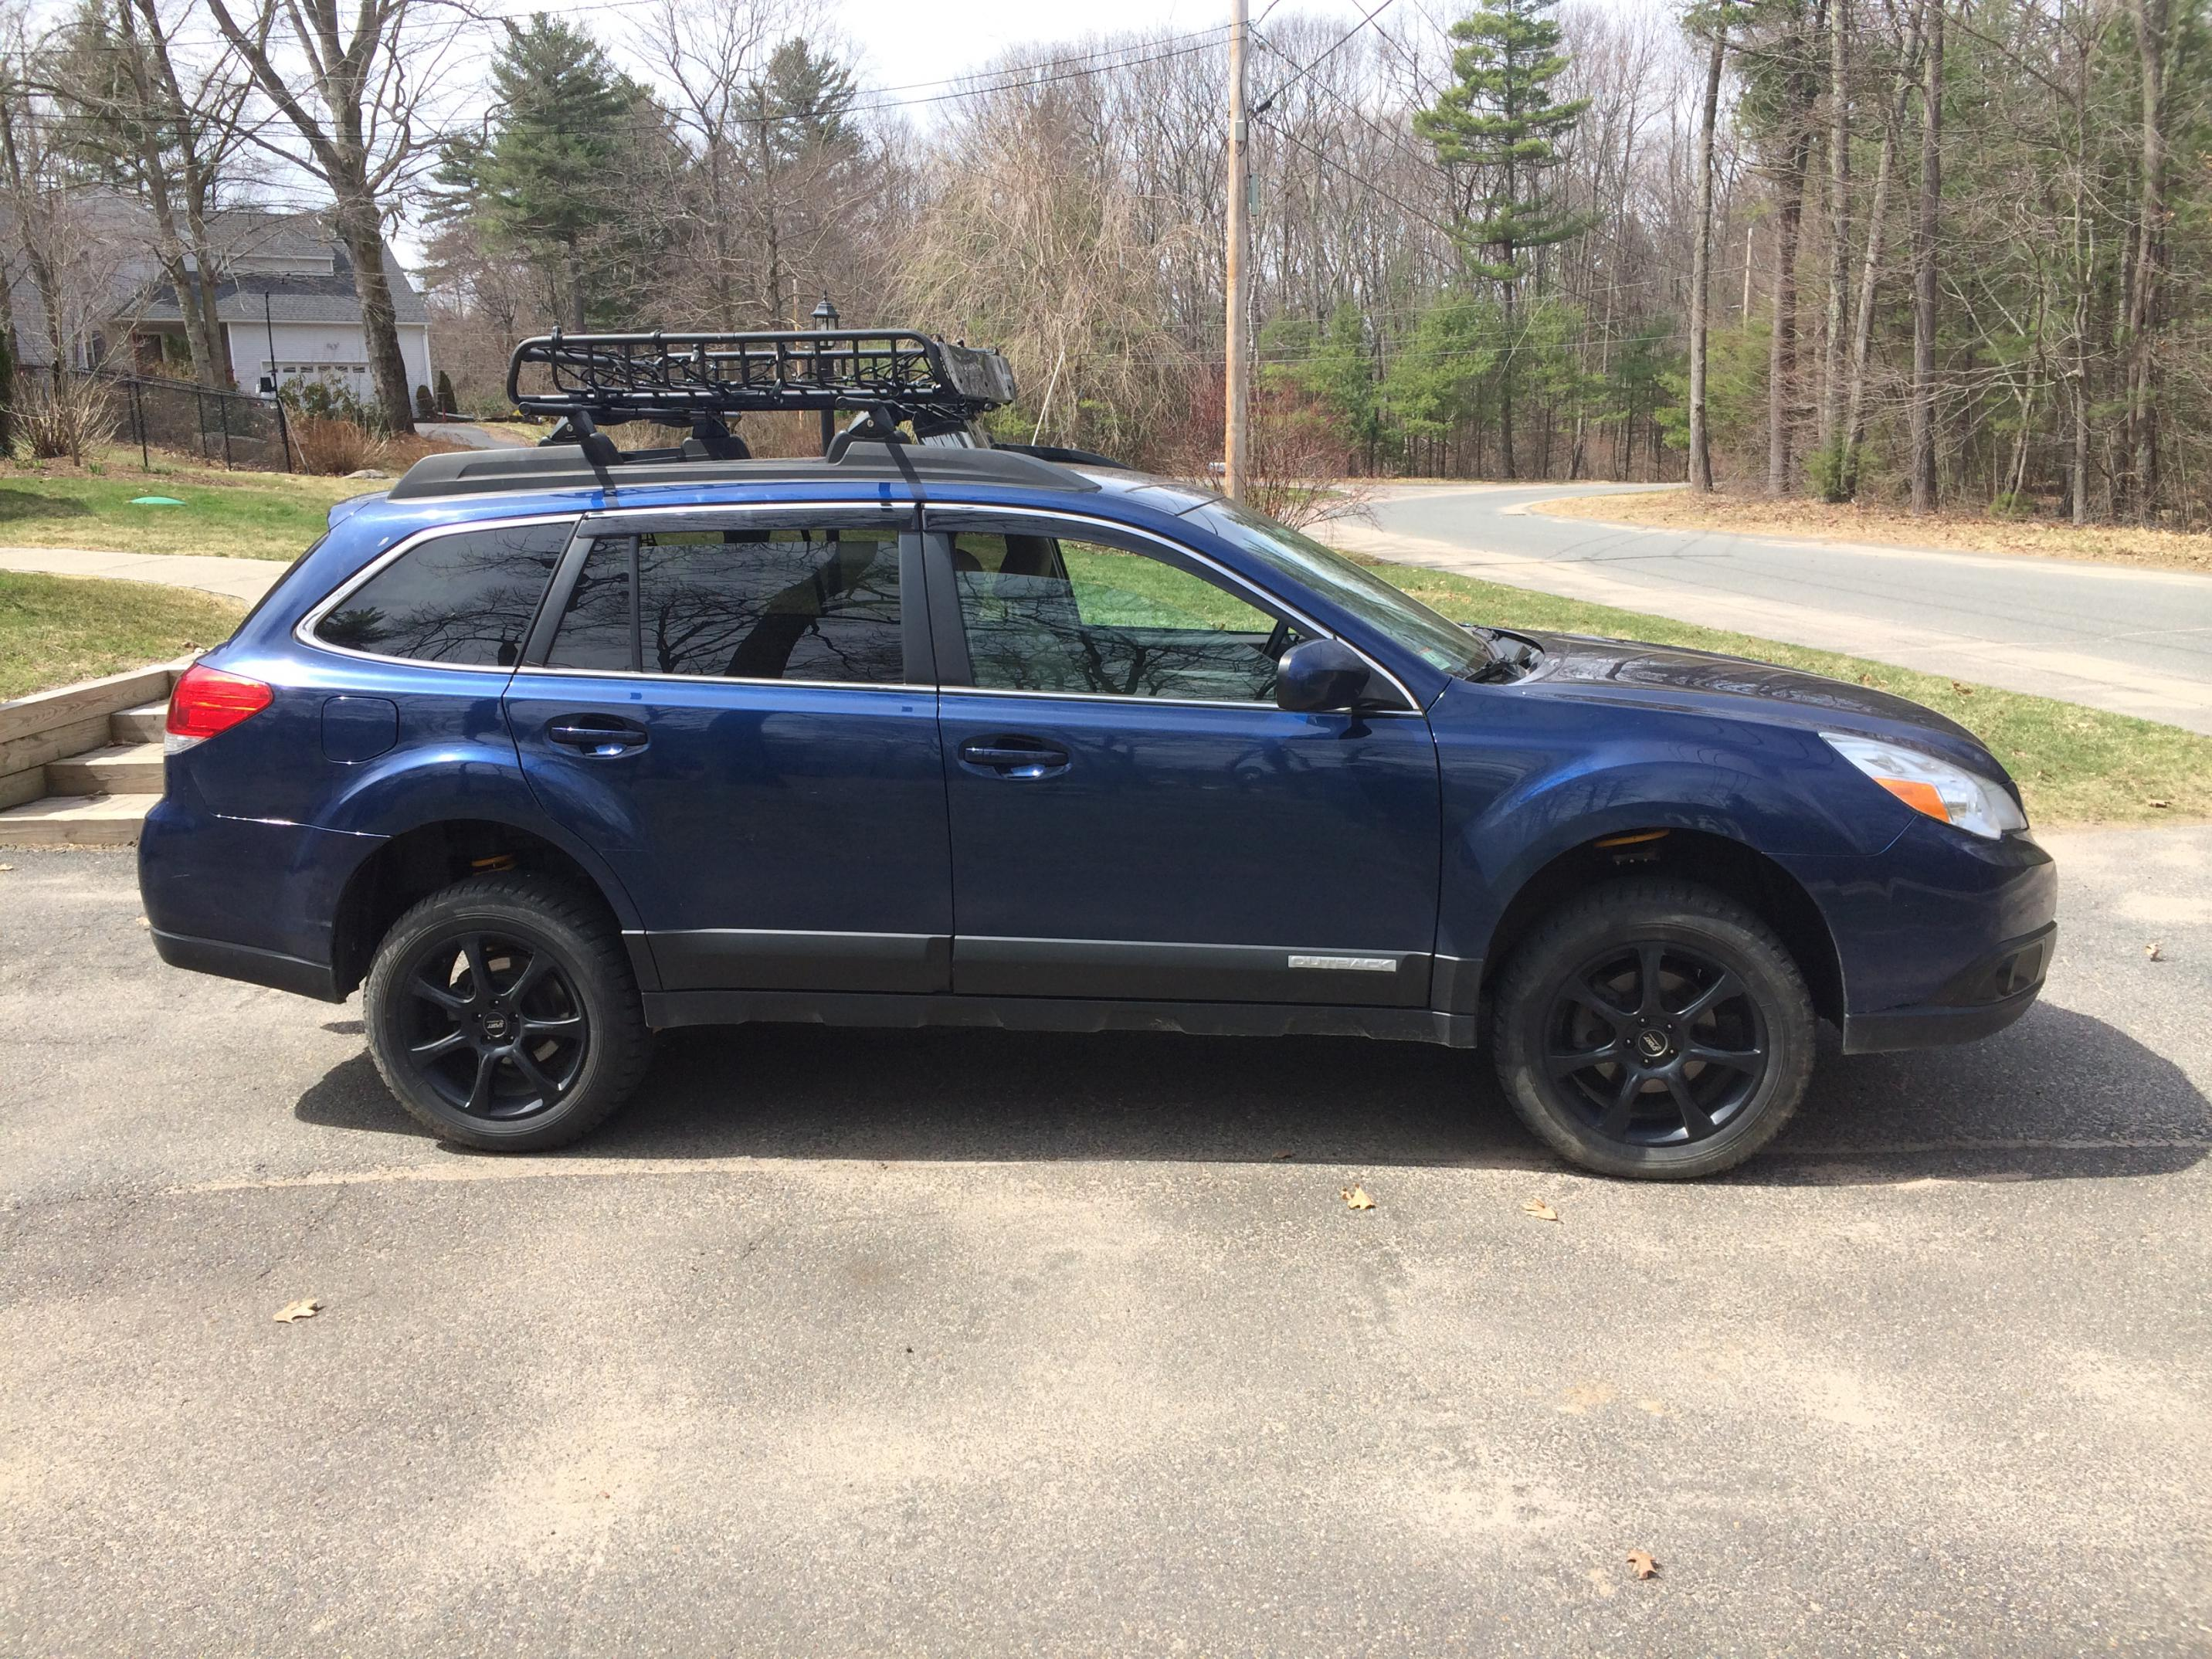 Lifting a Gen4 (10-12) Outback or Legacy? - Page 6 - Subaru Outback - Subaru Outback Forums